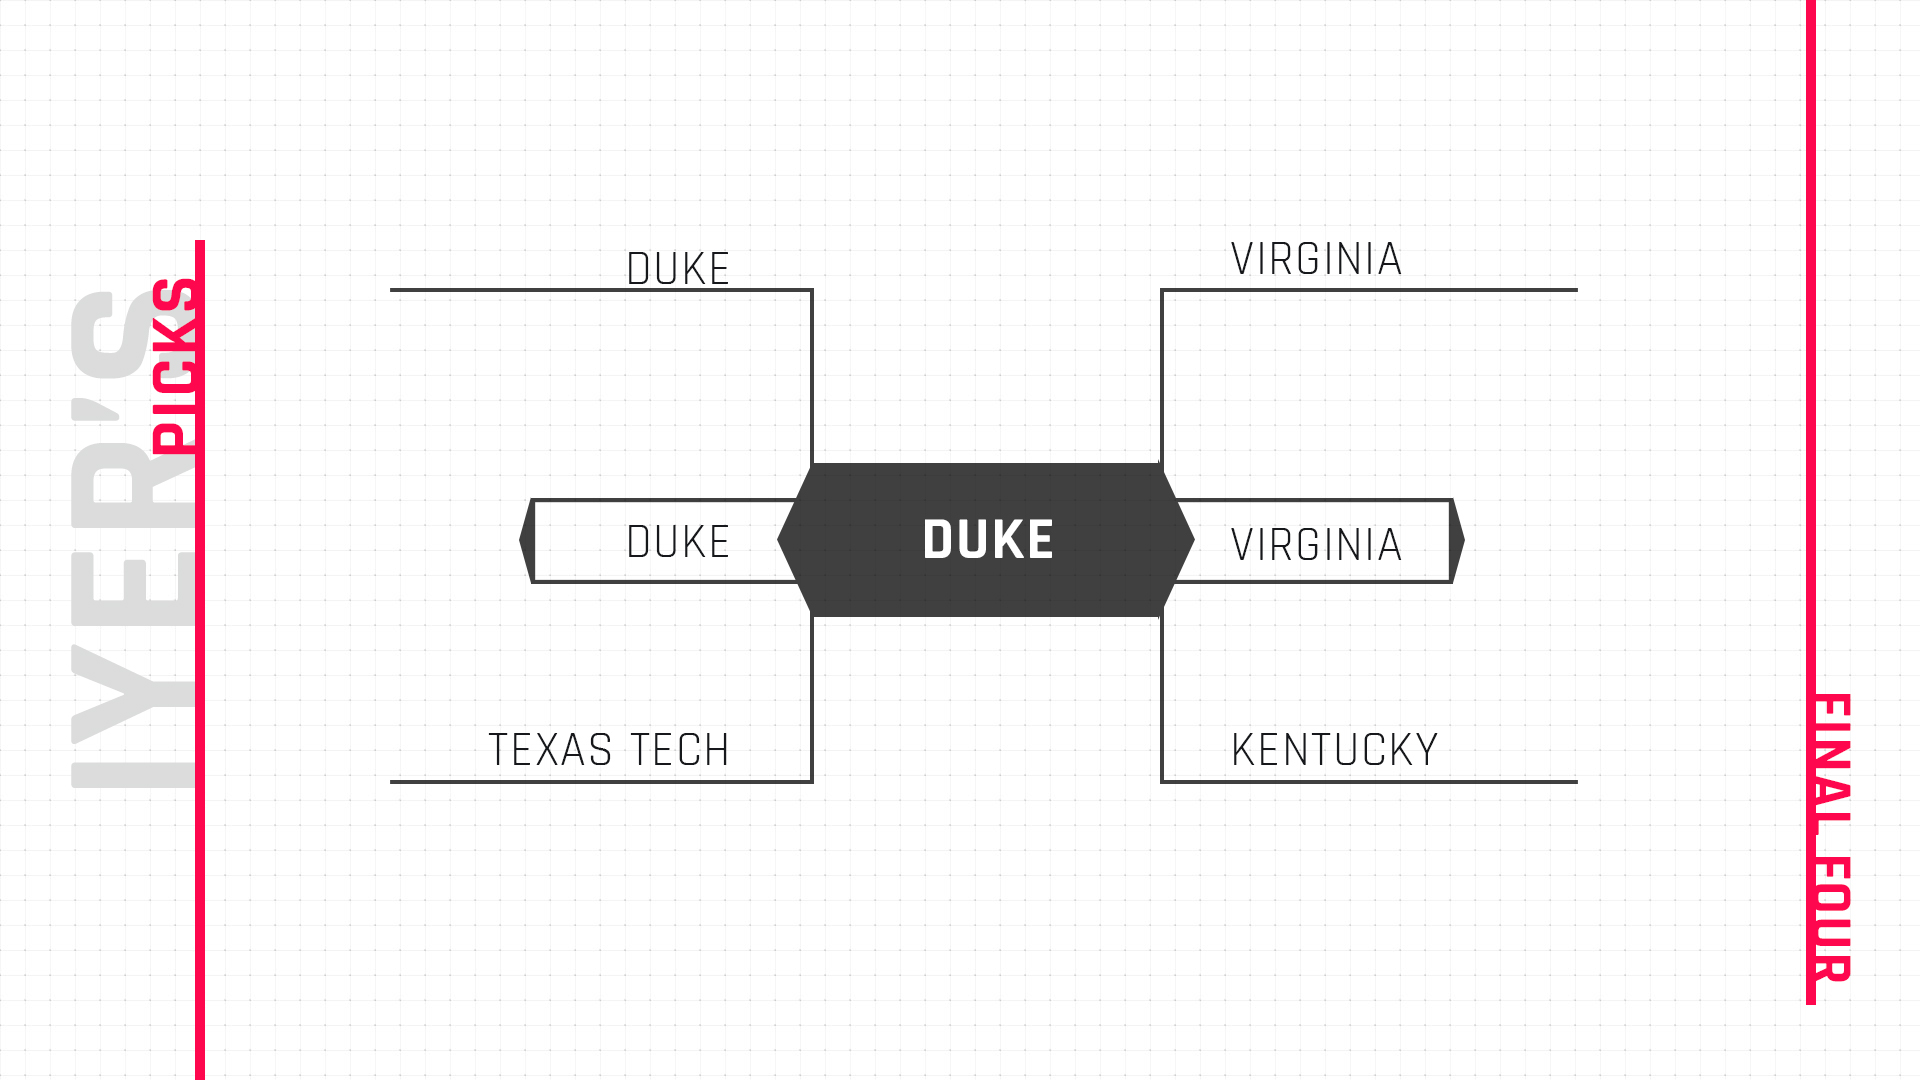 March Madness 2019 Using Kenpom To Predict Ncaa Bracket Upsets